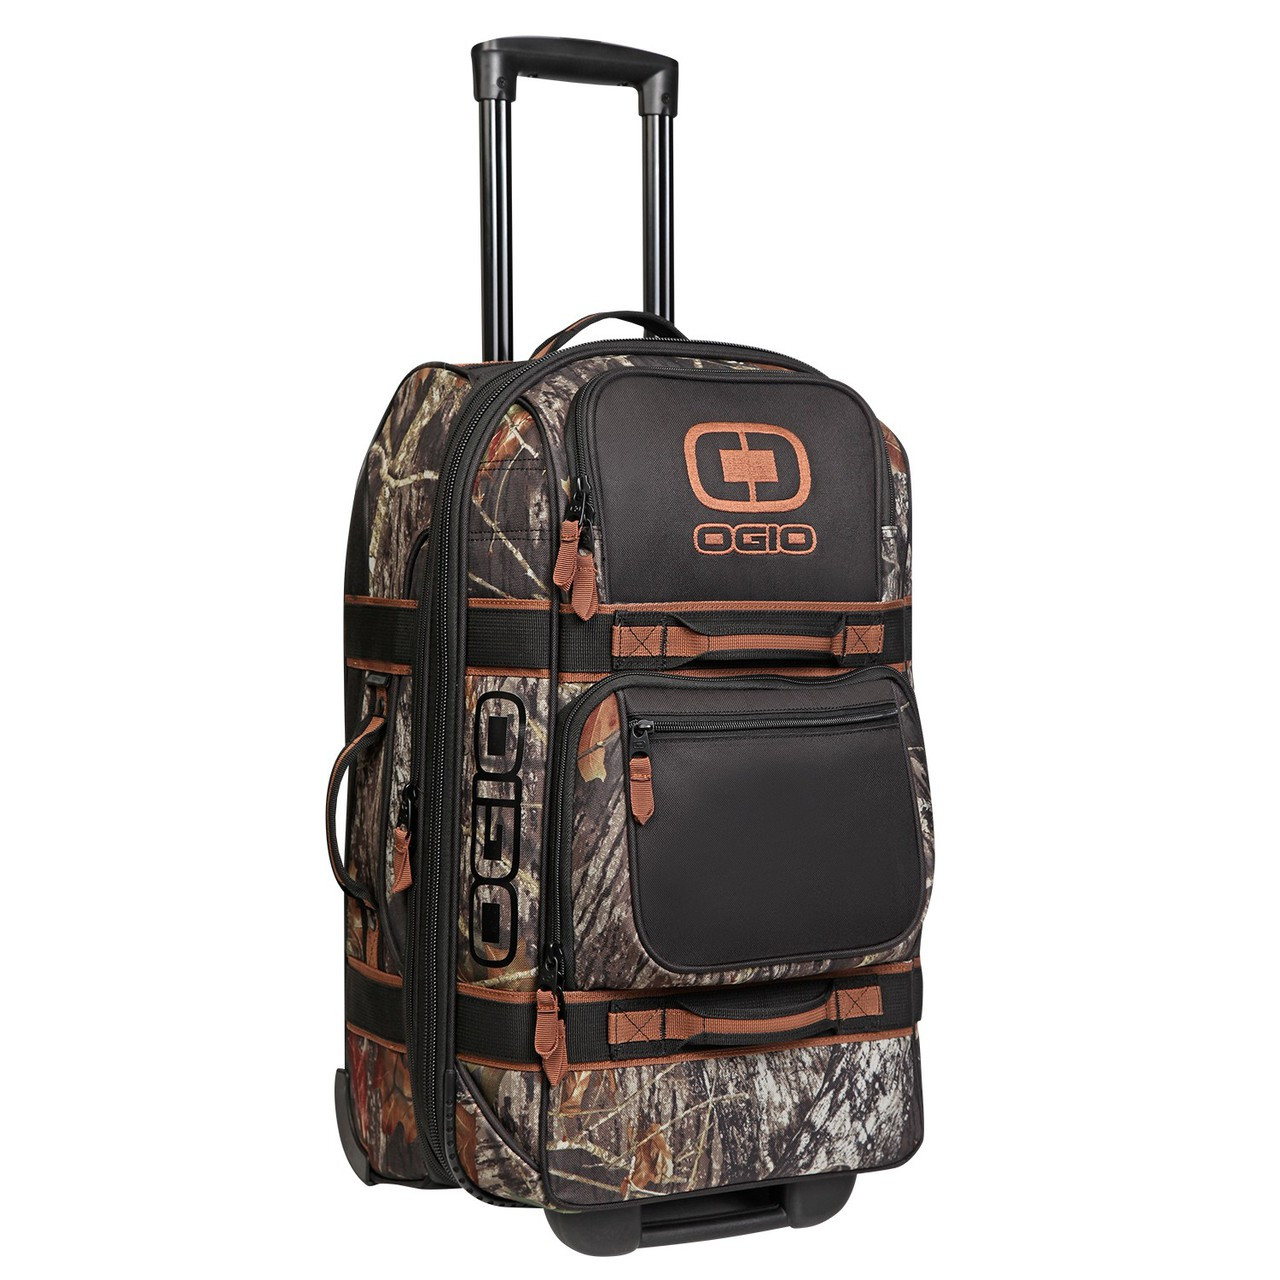 Ogio Layover Bag - Motorcycle House